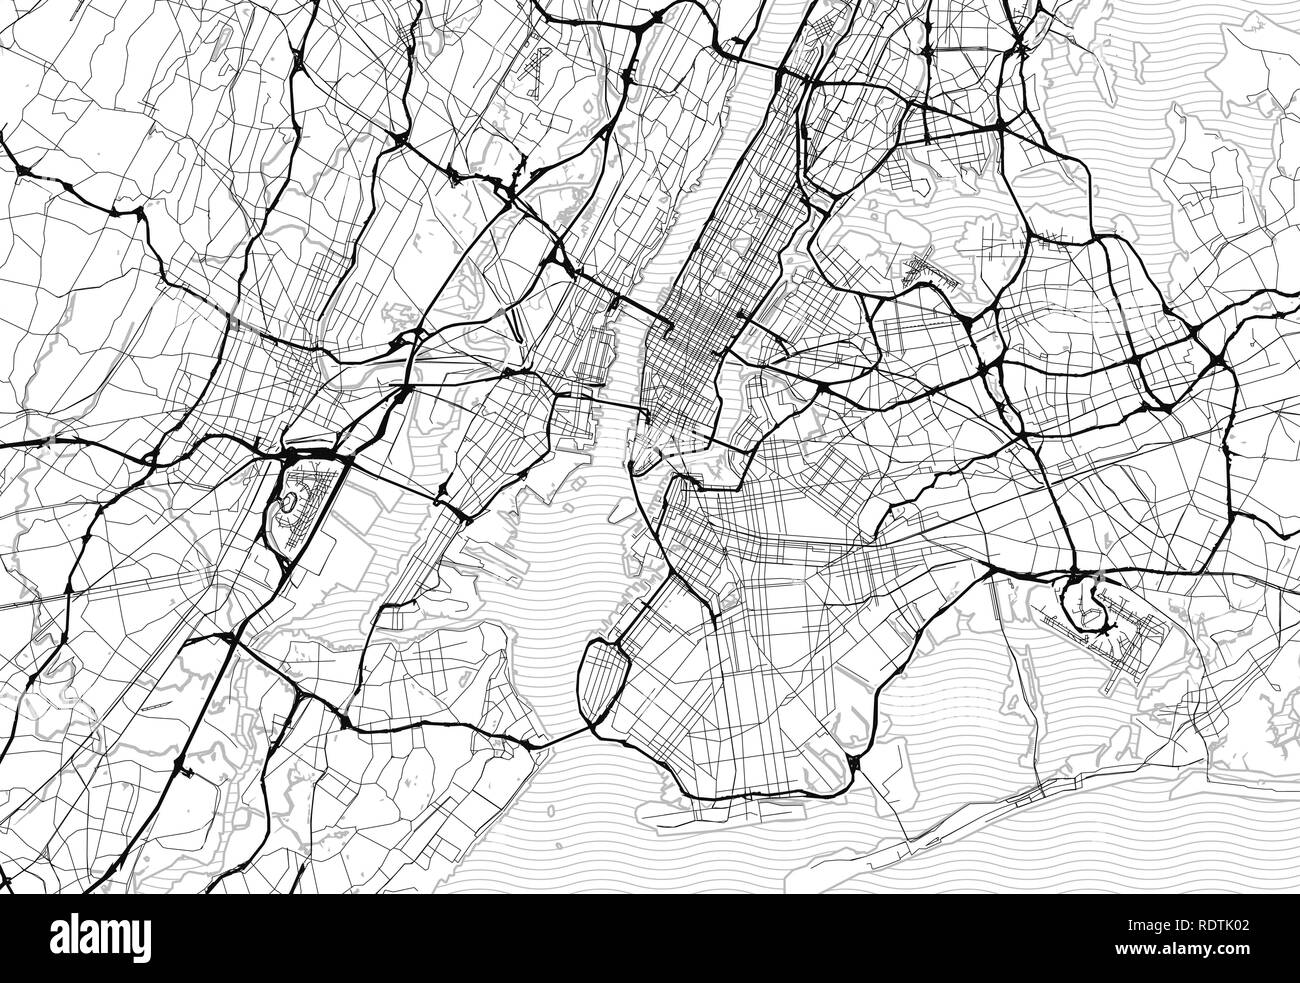 Area map of New York City, United States. This artmap of New York City contains geography lines for land mass, water, major and minor roads. - Stock Vector